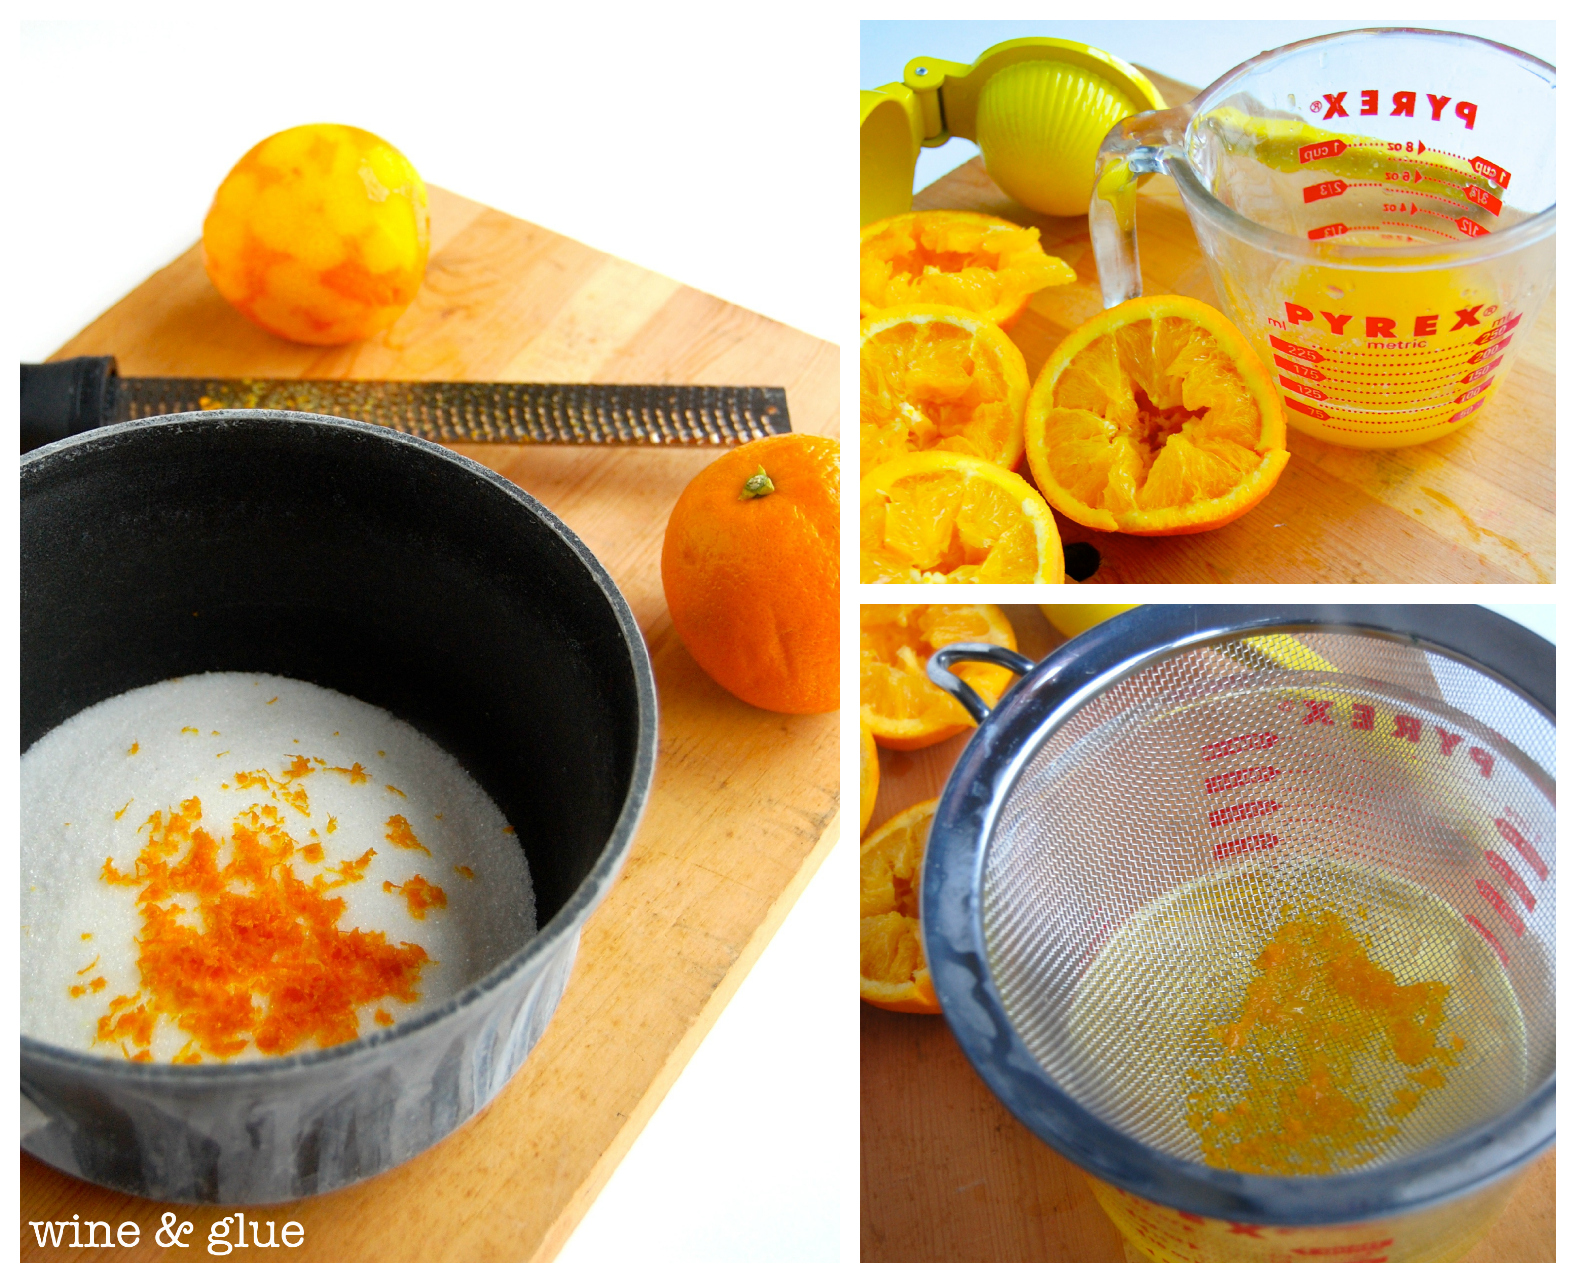 A collage of three photos. The first shows a pot with white sugar and orange zest. The top right corner shows a measuring cup with squeezed orange. The bottom right corner shows a strainer on top of the measuring cup. The strainer has wet orange zest in it.